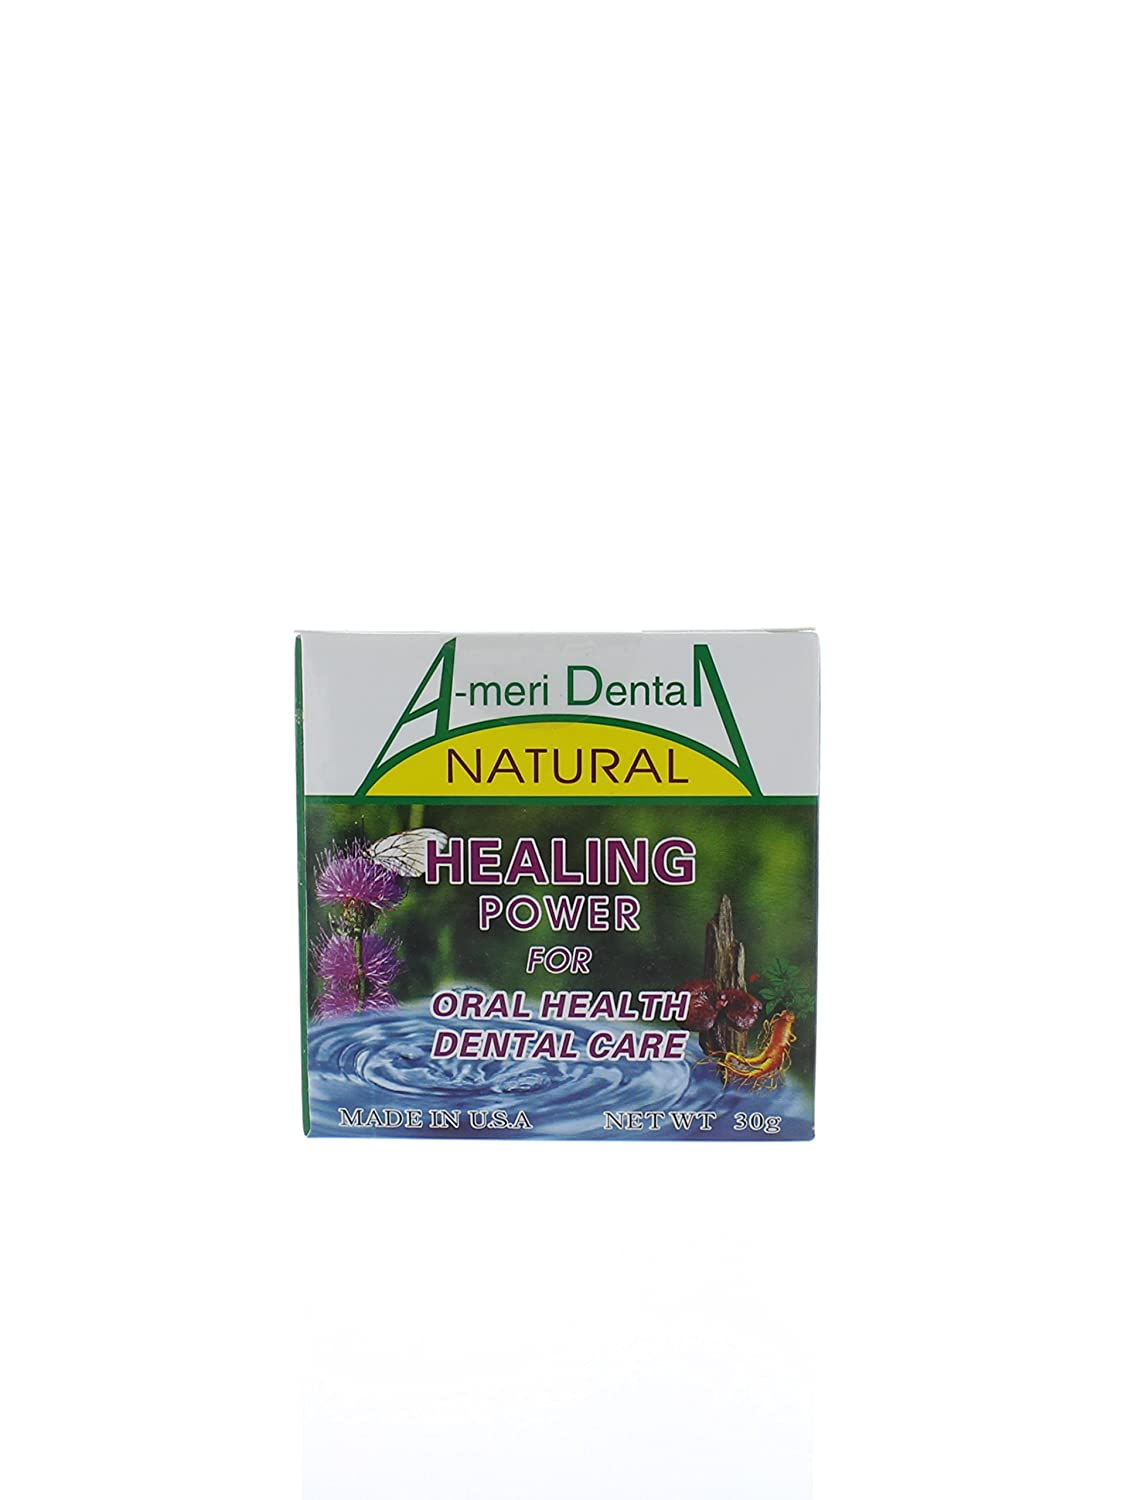 Total Oral Care Specific for Gingival Recession, Periodontitis, Loose Tooth, Gum Pain, Tooth Sensitivity, Tooth Whitening, Oral Refreshment etc. 100 Organic Plant Powder. Golden Metal Product. Made in USA